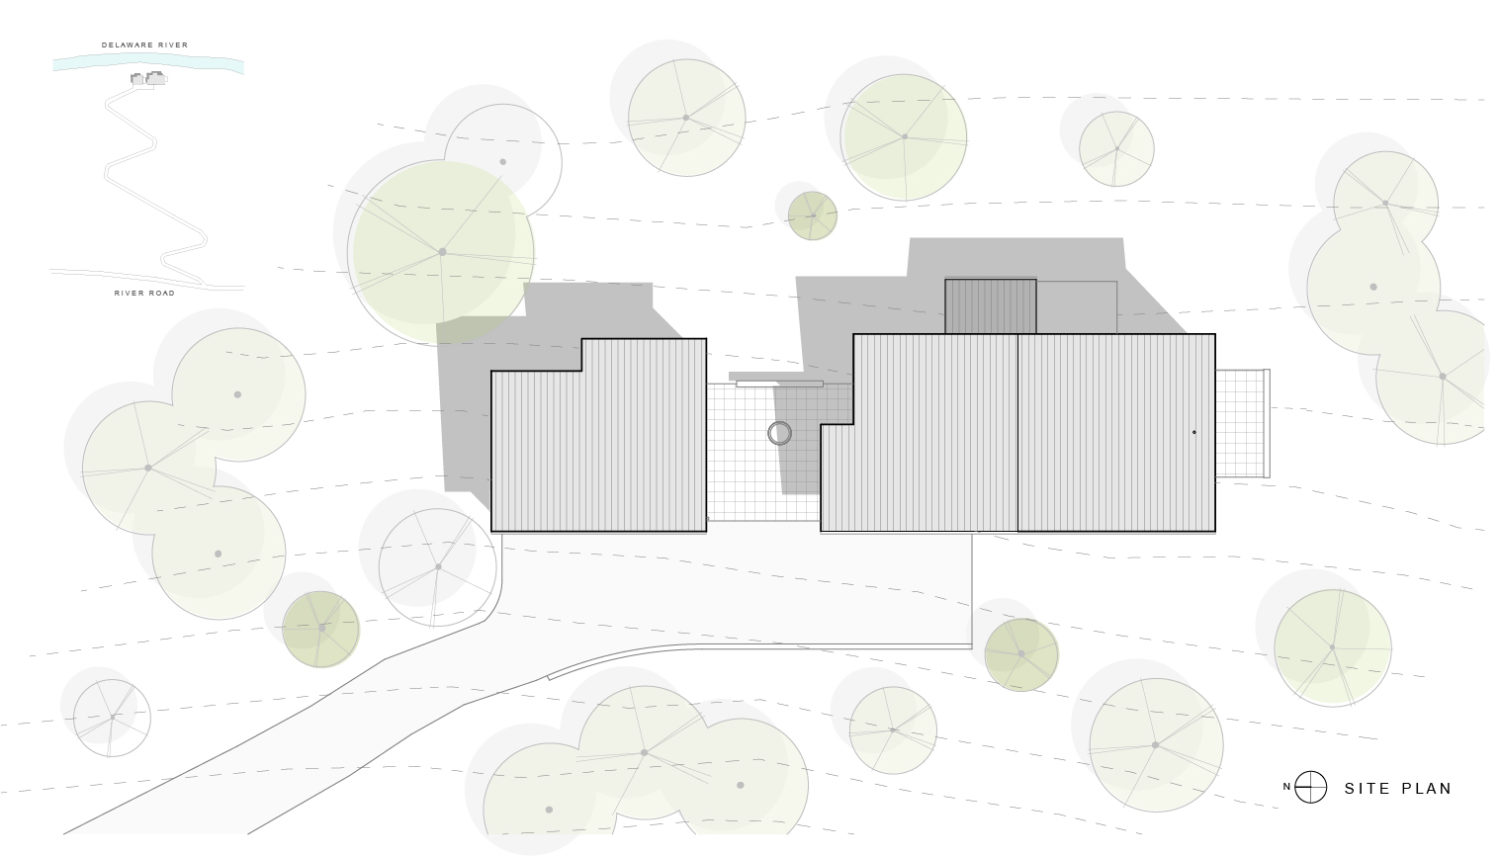 wylie-woods-passive-house-site-plan